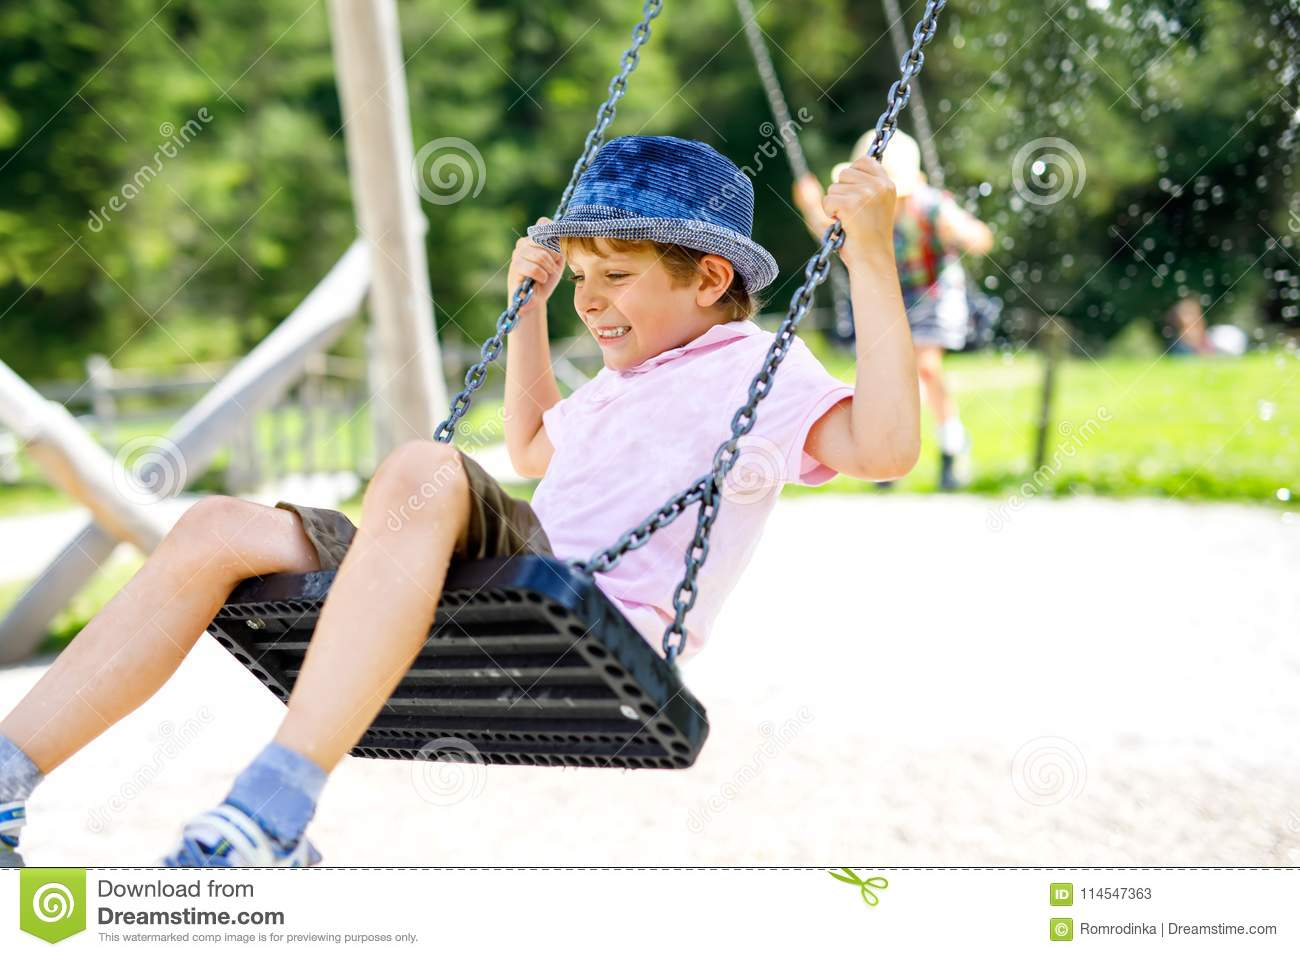 Funny kid boy having fun with chain swing on outdoor playground while being wet splashed with water